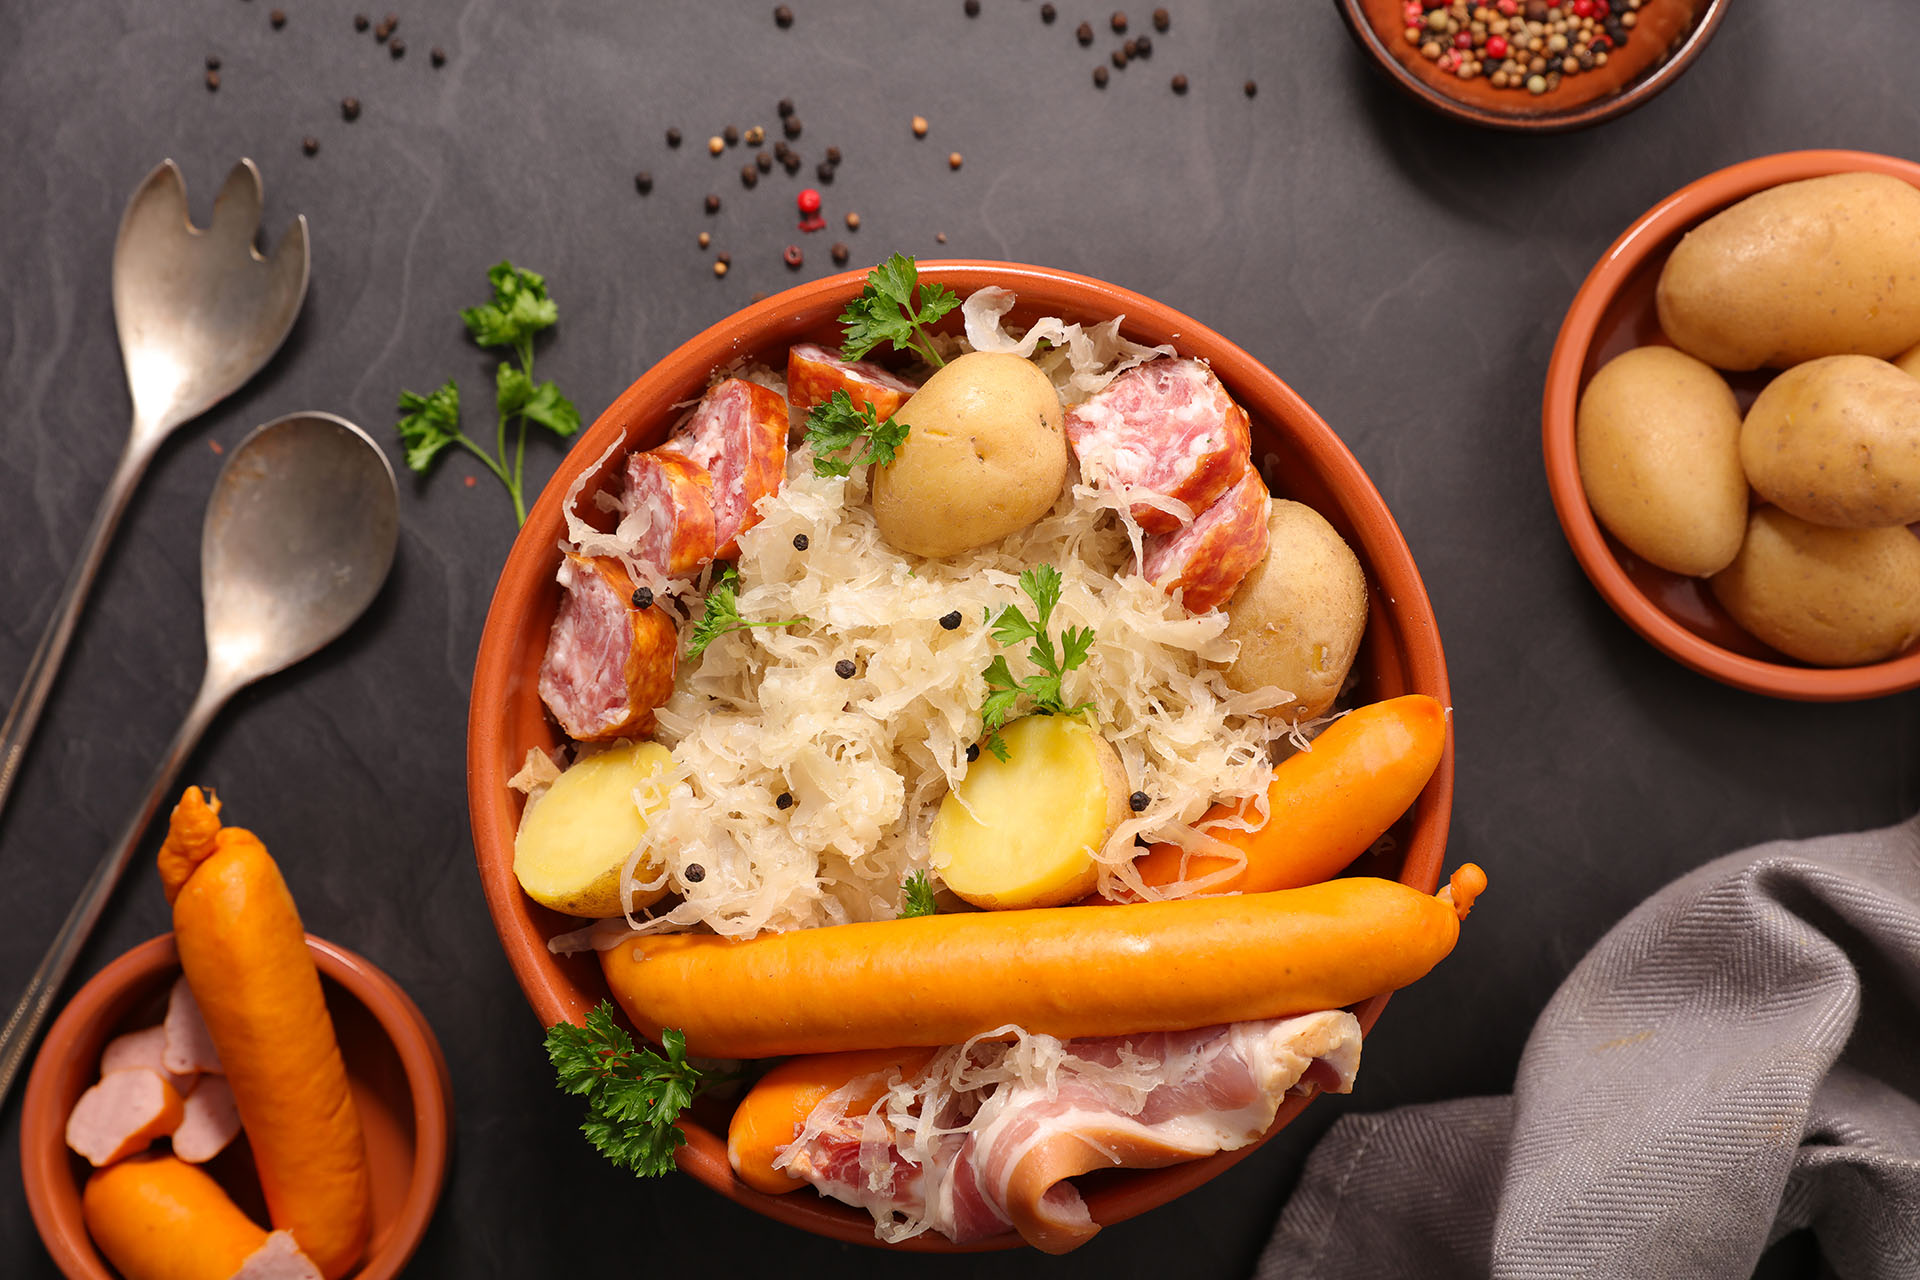 sauerkraut with potato and sausage